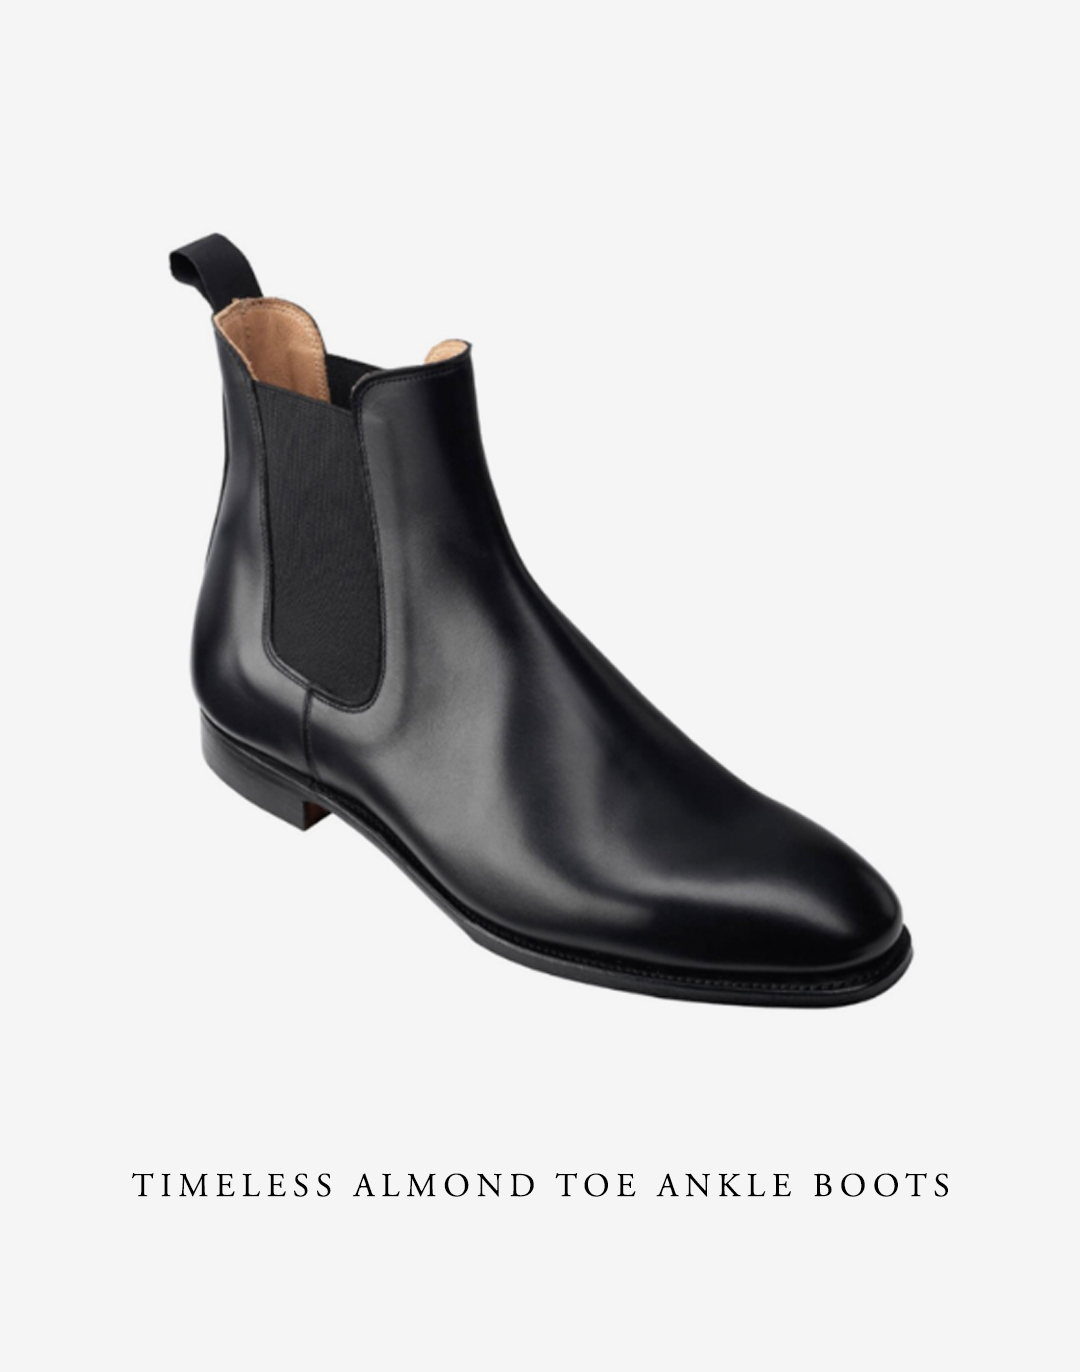 crockett and jones ankle boots.jpg